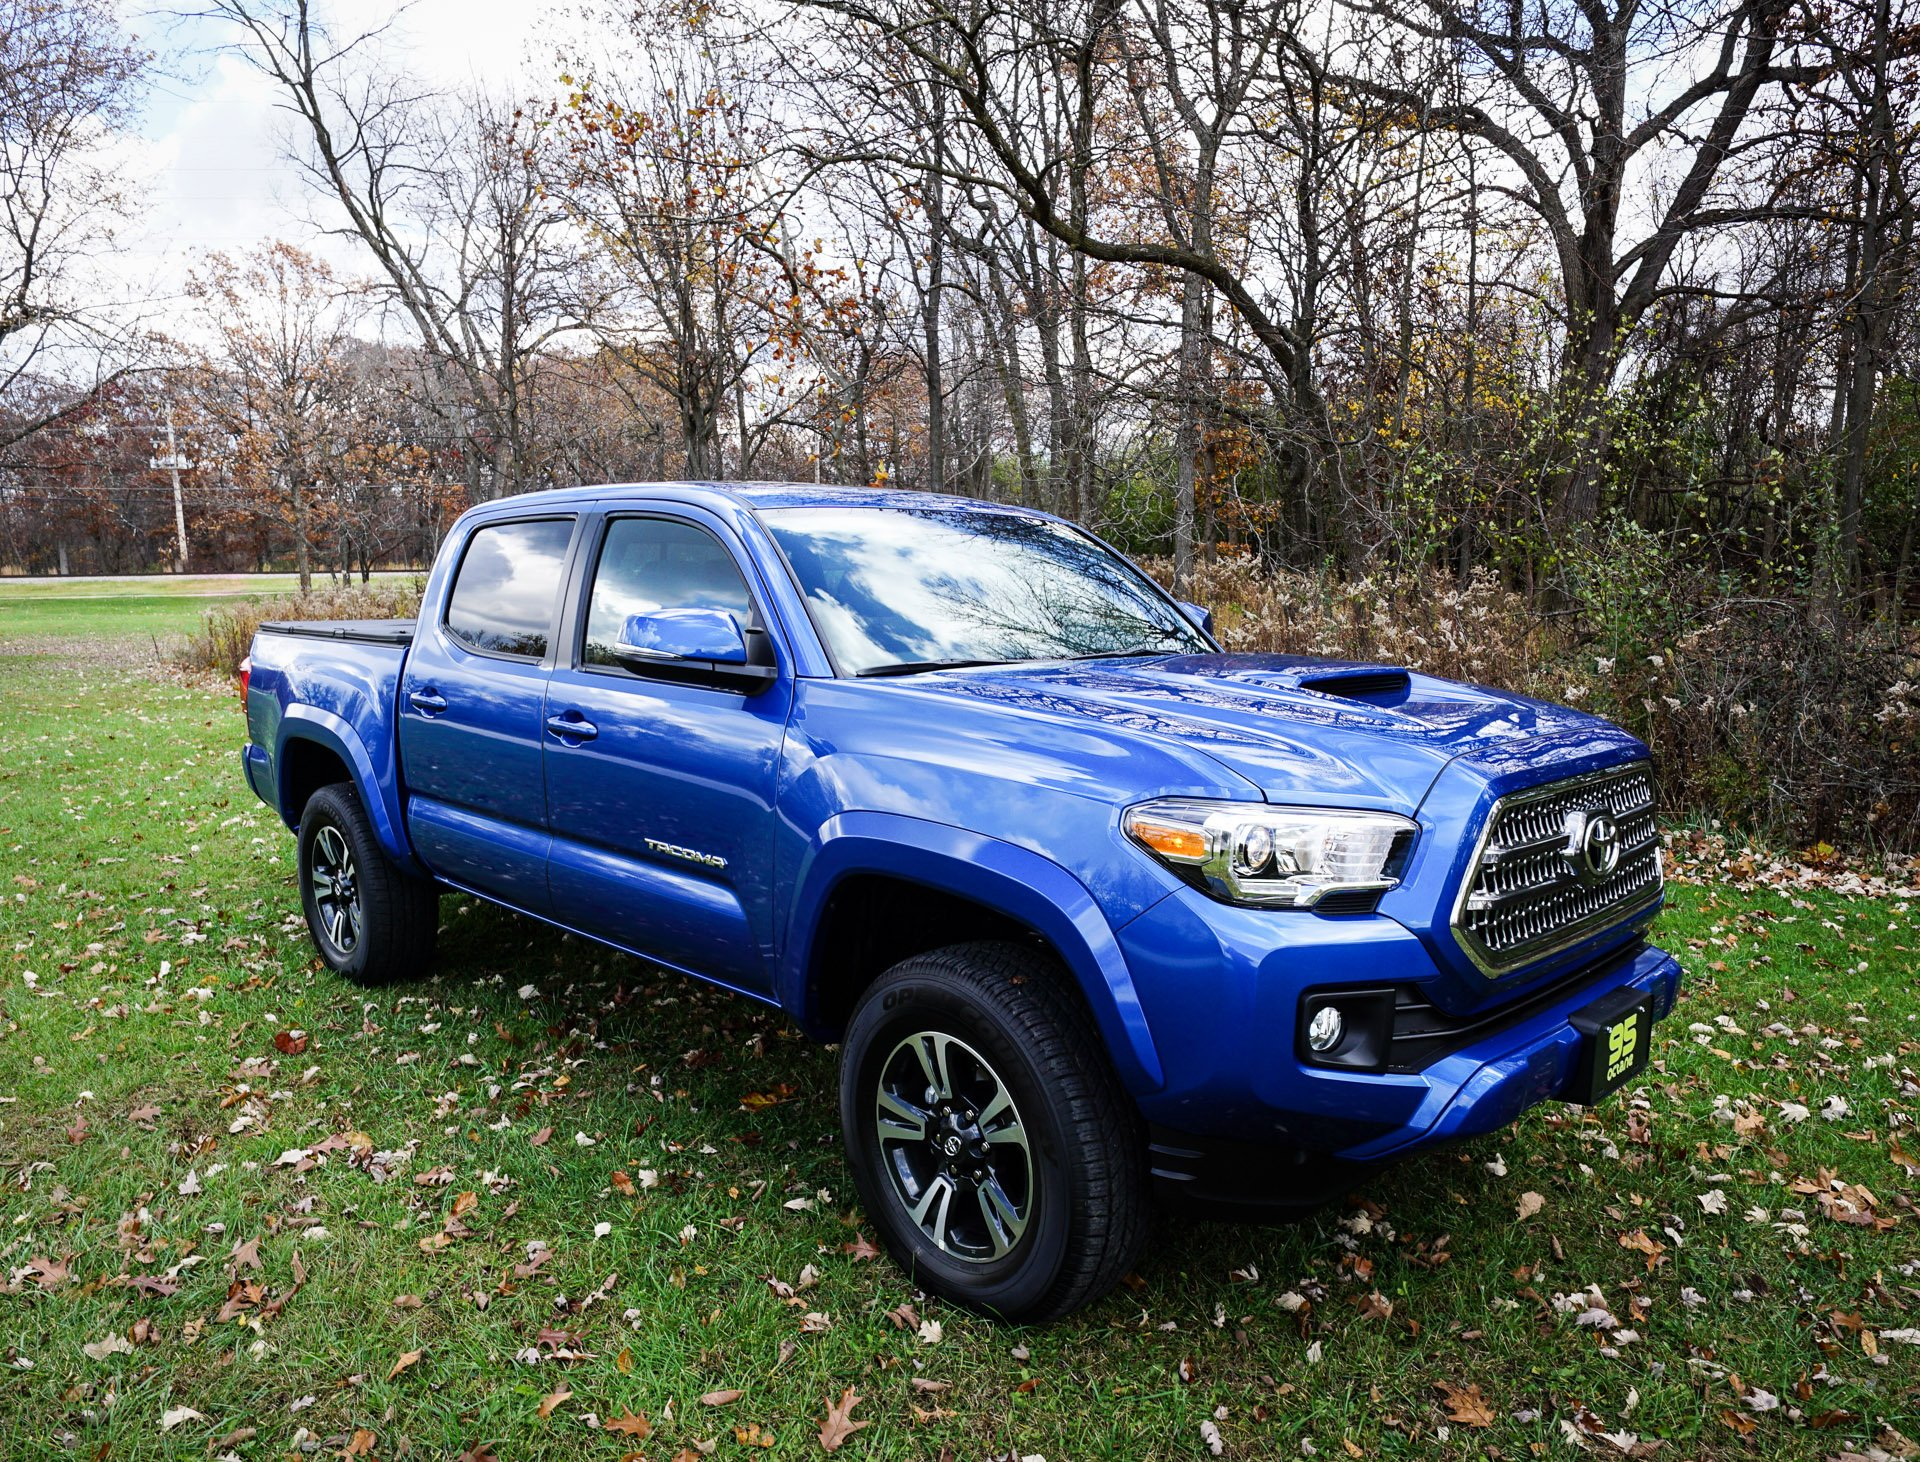 daily driving the 2016 toyota tacoma trd sport 4x4 95 octane. Black Bedroom Furniture Sets. Home Design Ideas